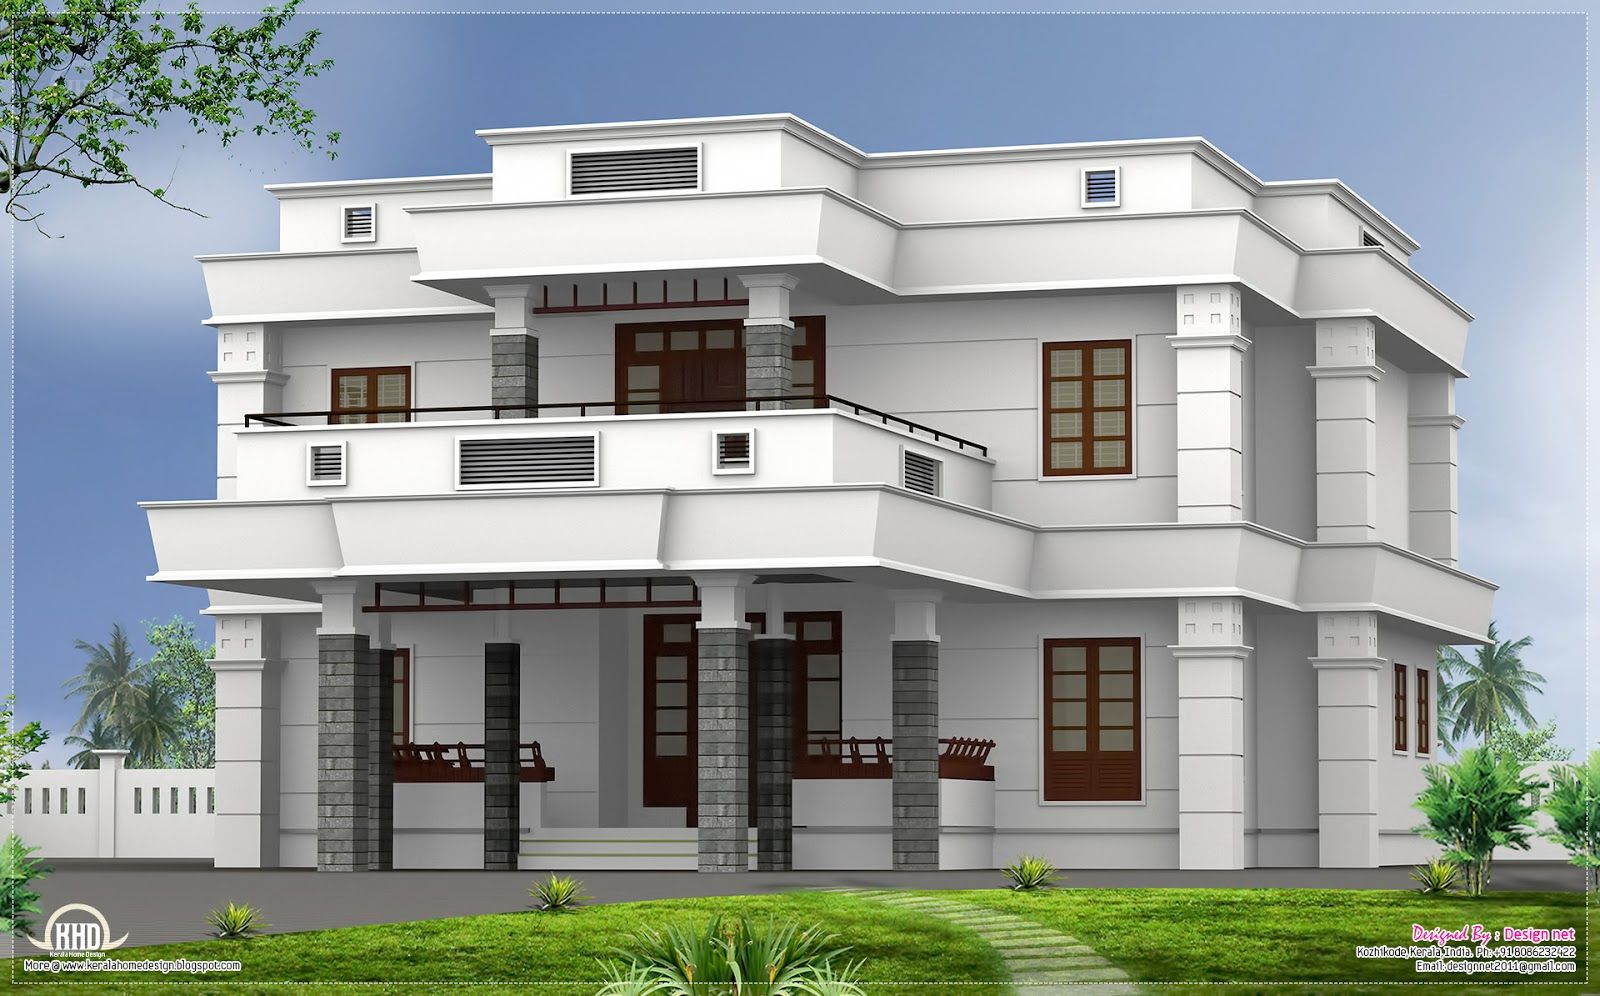 Flat roof homes designs bhk modern flat roof house Types of modern houses